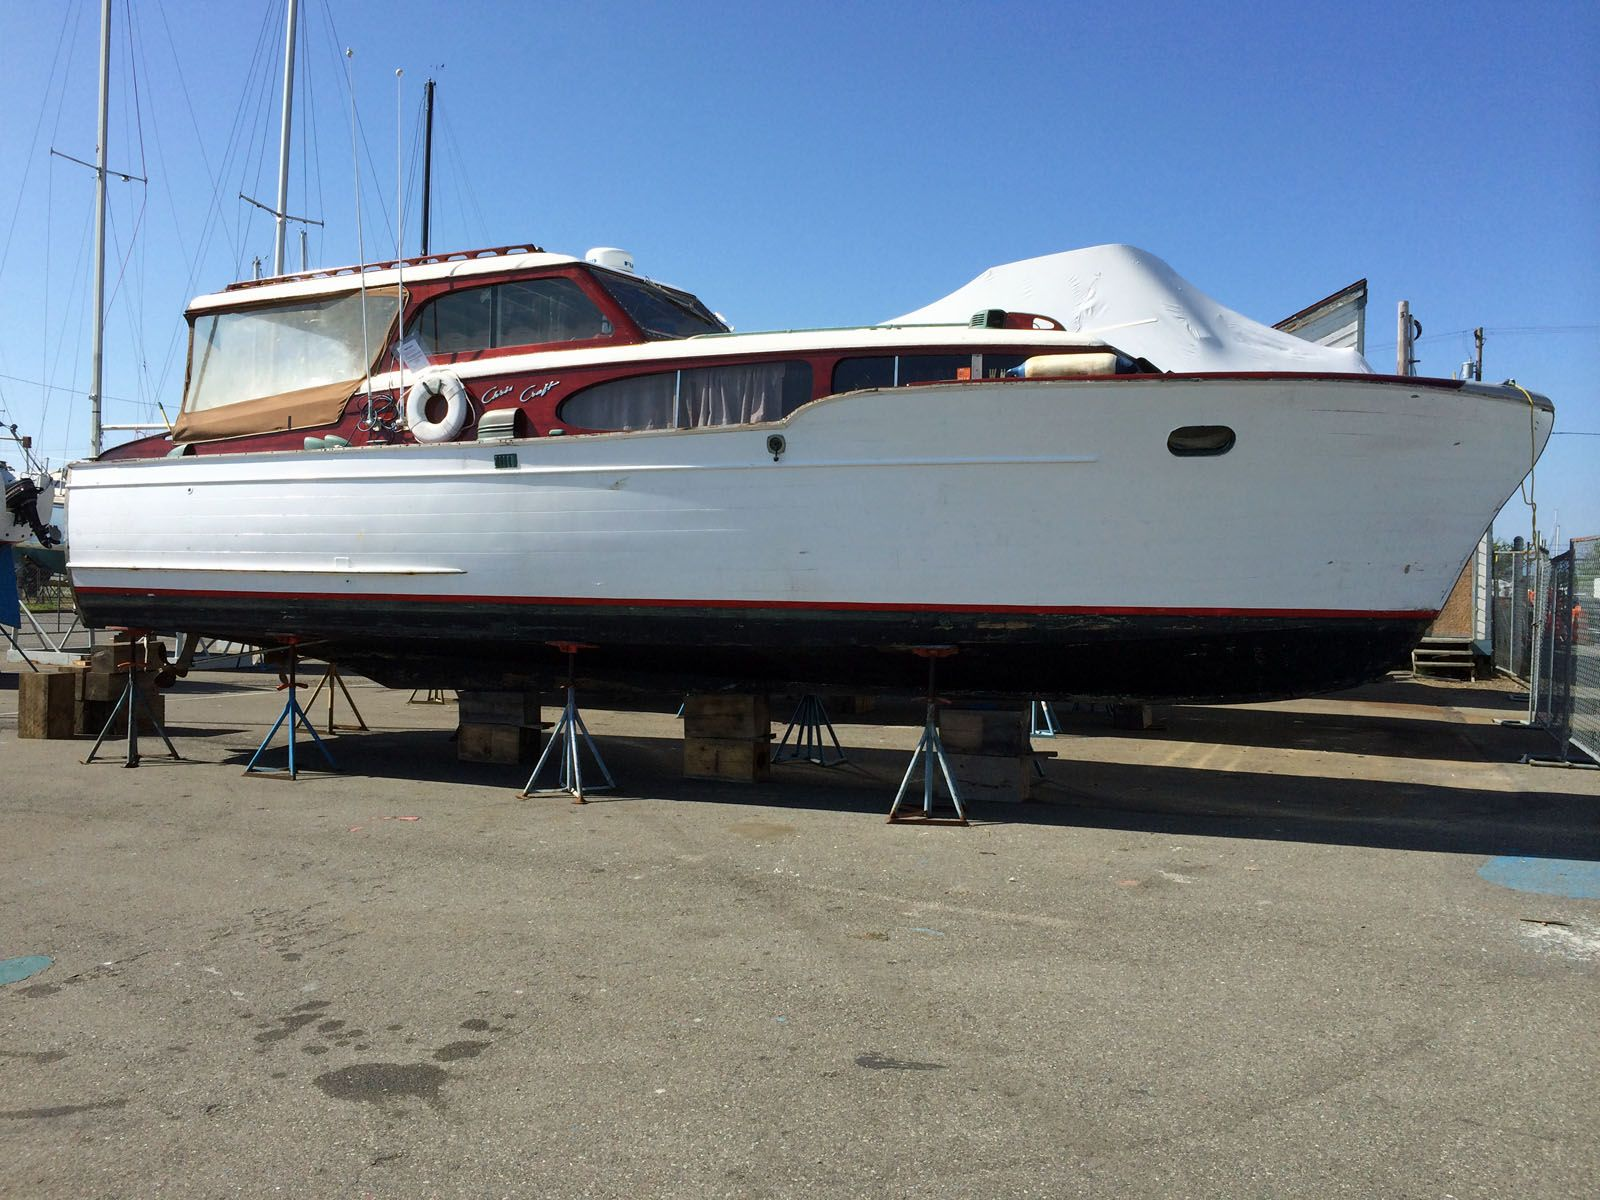 1951 Chris Craft Commander 34' | Chris Craft Motor Yachts